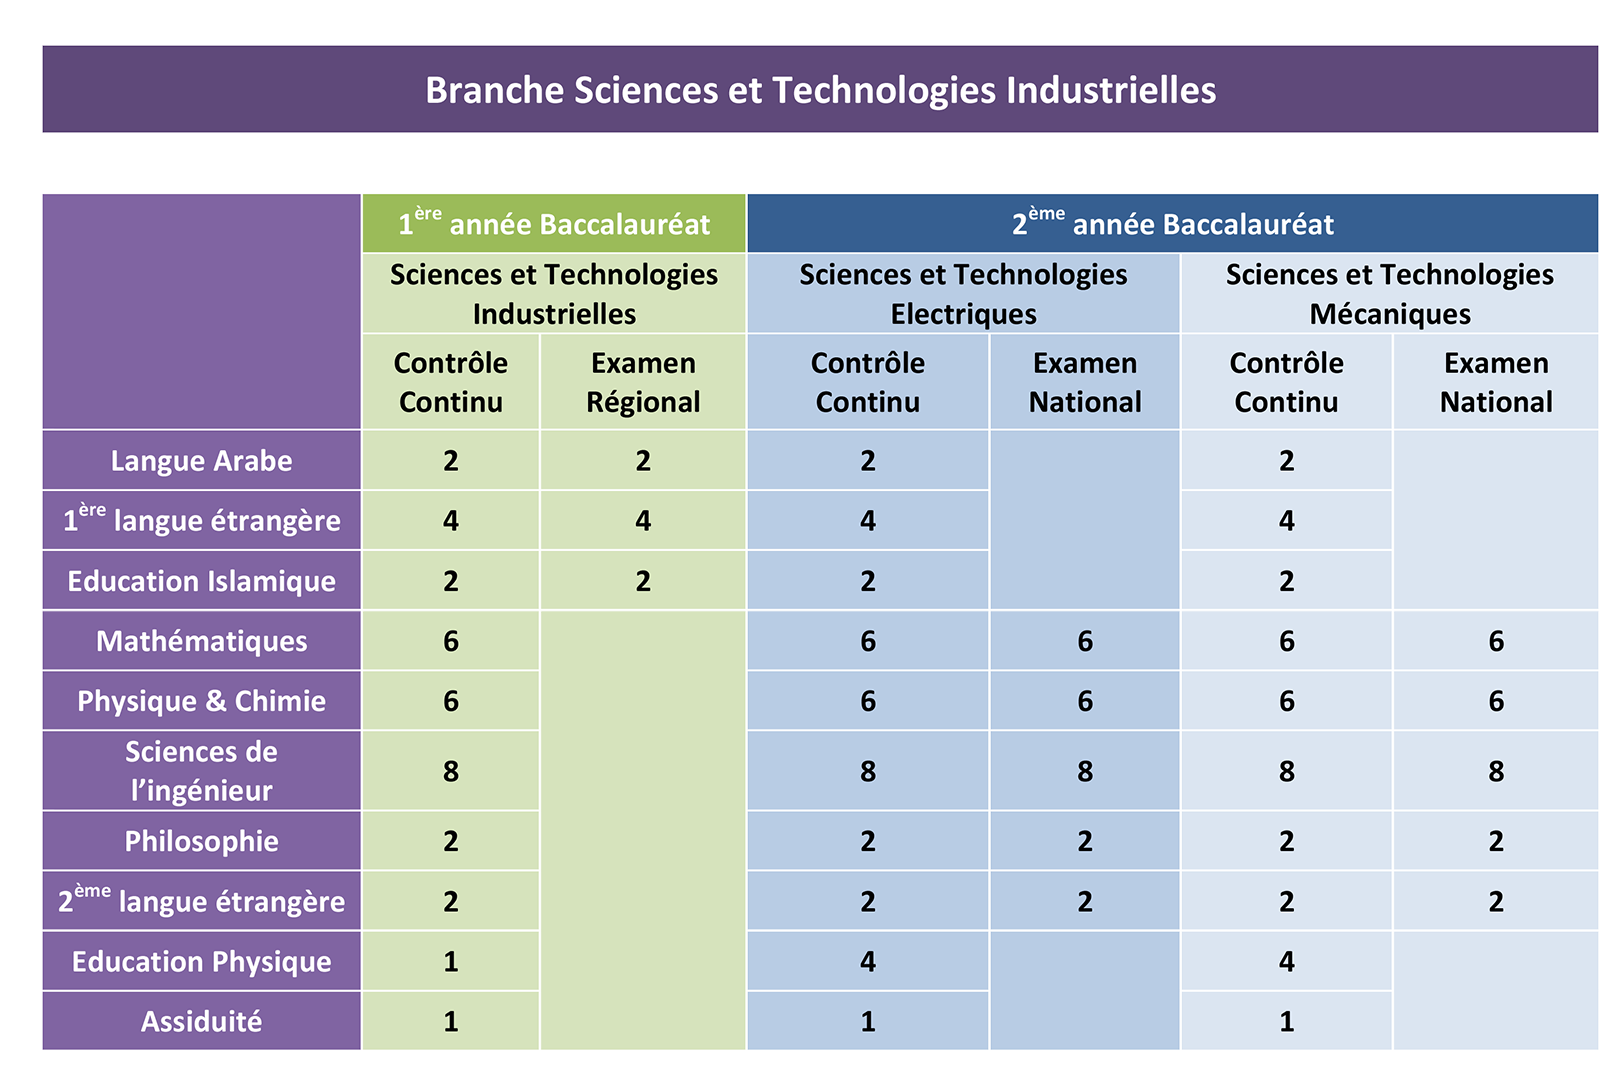 bac sciences et technologies industrielles